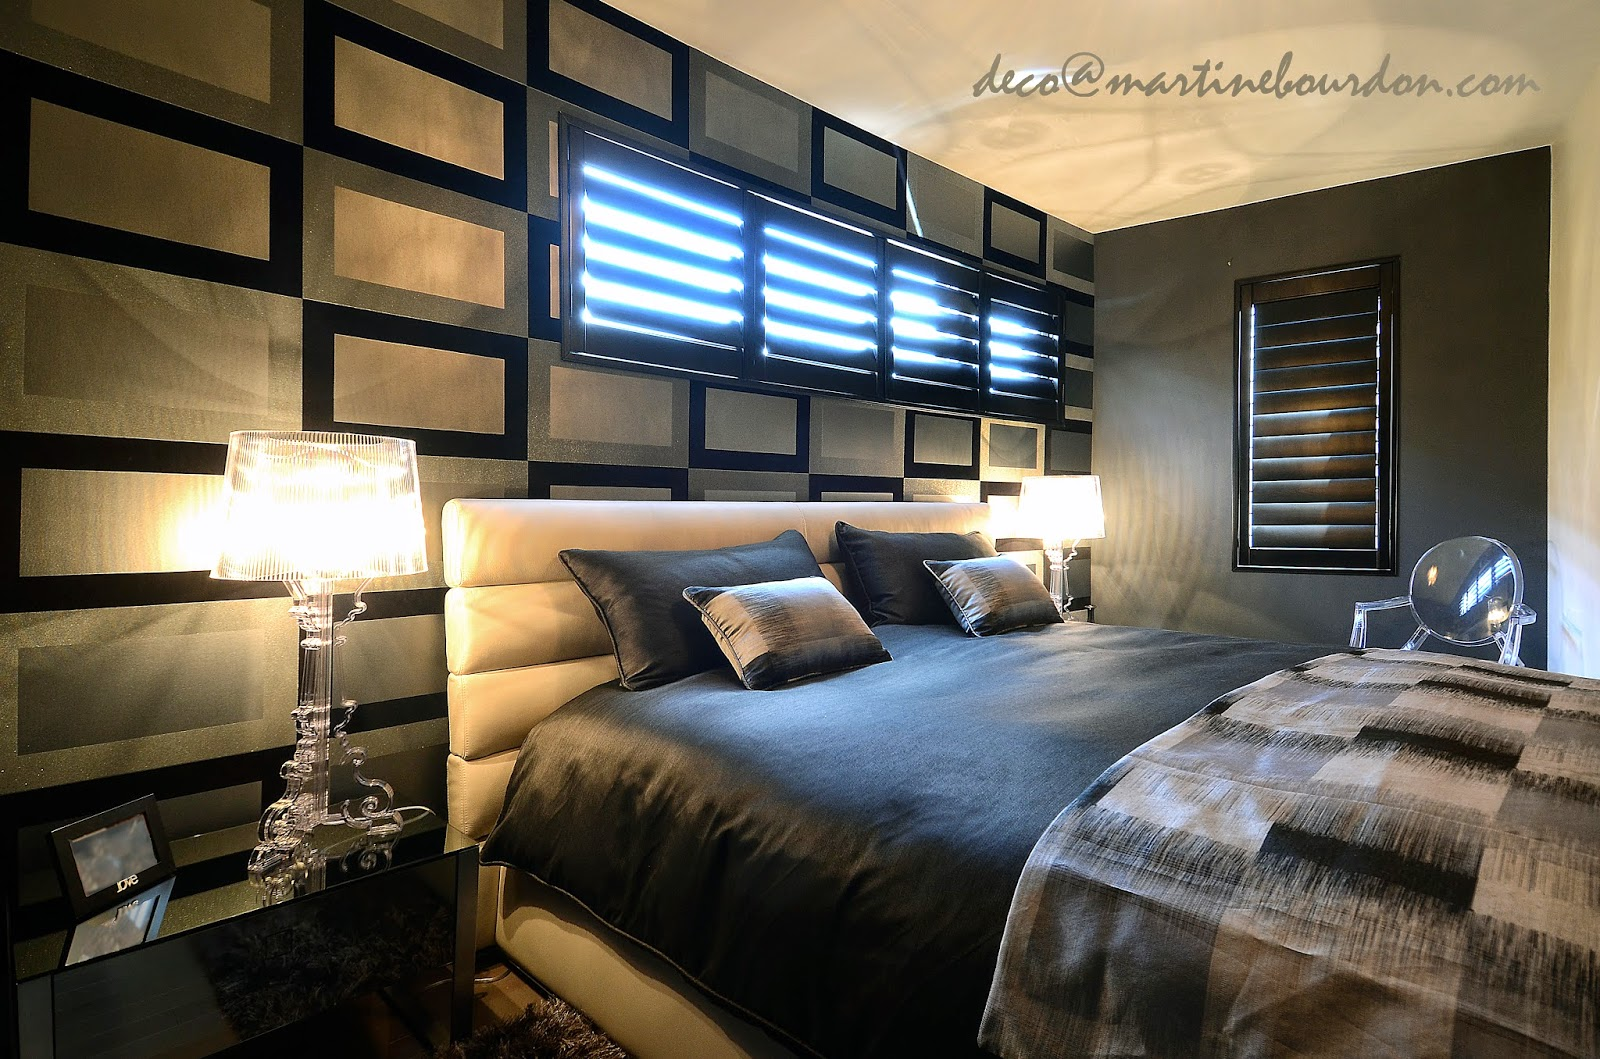 l 39 espace d co un condo une chambre coucher et du style. Black Bedroom Furniture Sets. Home Design Ideas